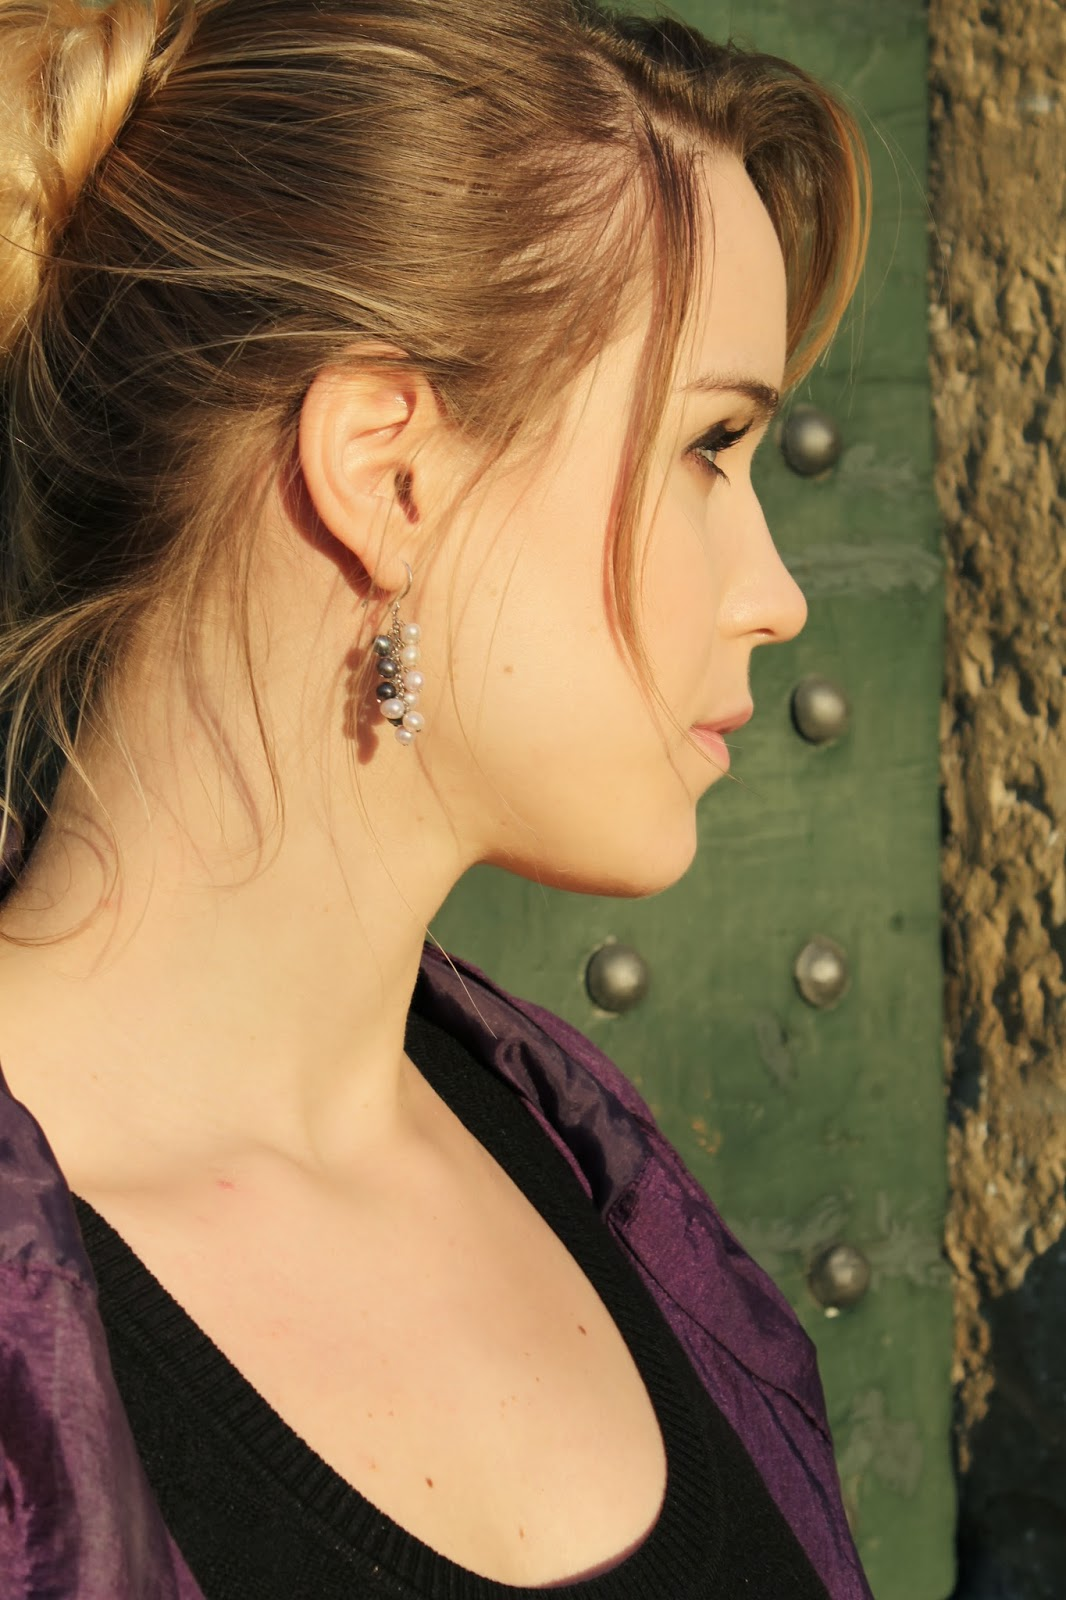 girl with pearls earrings